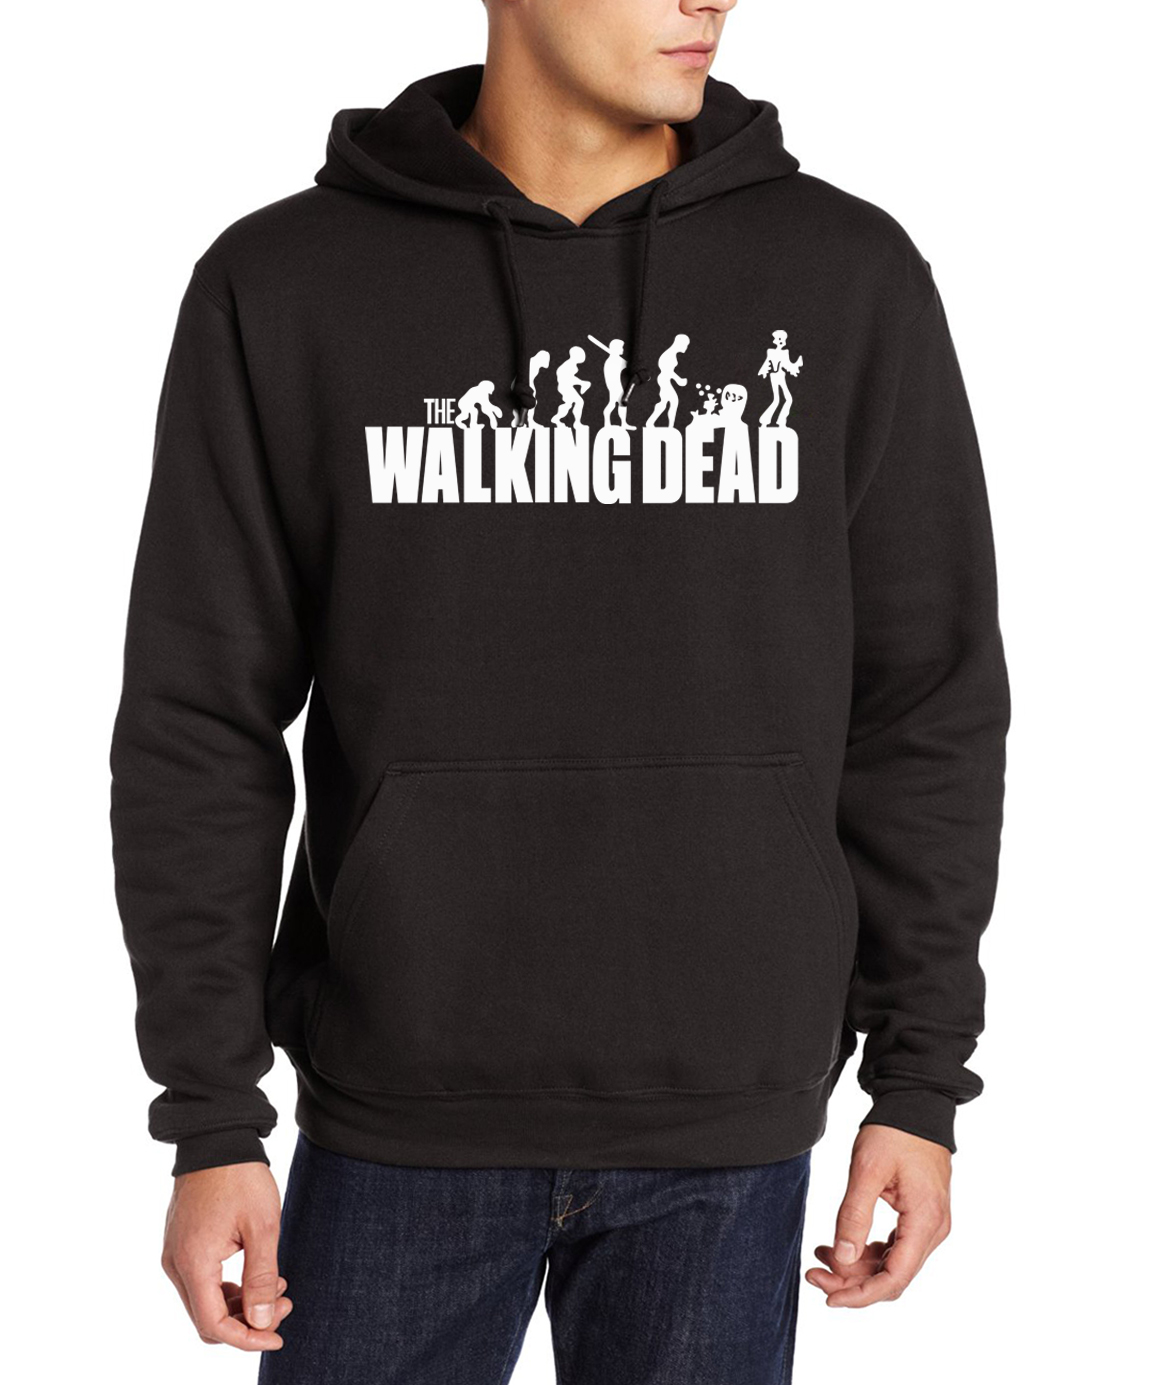 man's the walking dead hoodies men casual fleece hip-hop sweatshirt 2019 male harajuku pullovers fashion brand tracksuits hooded